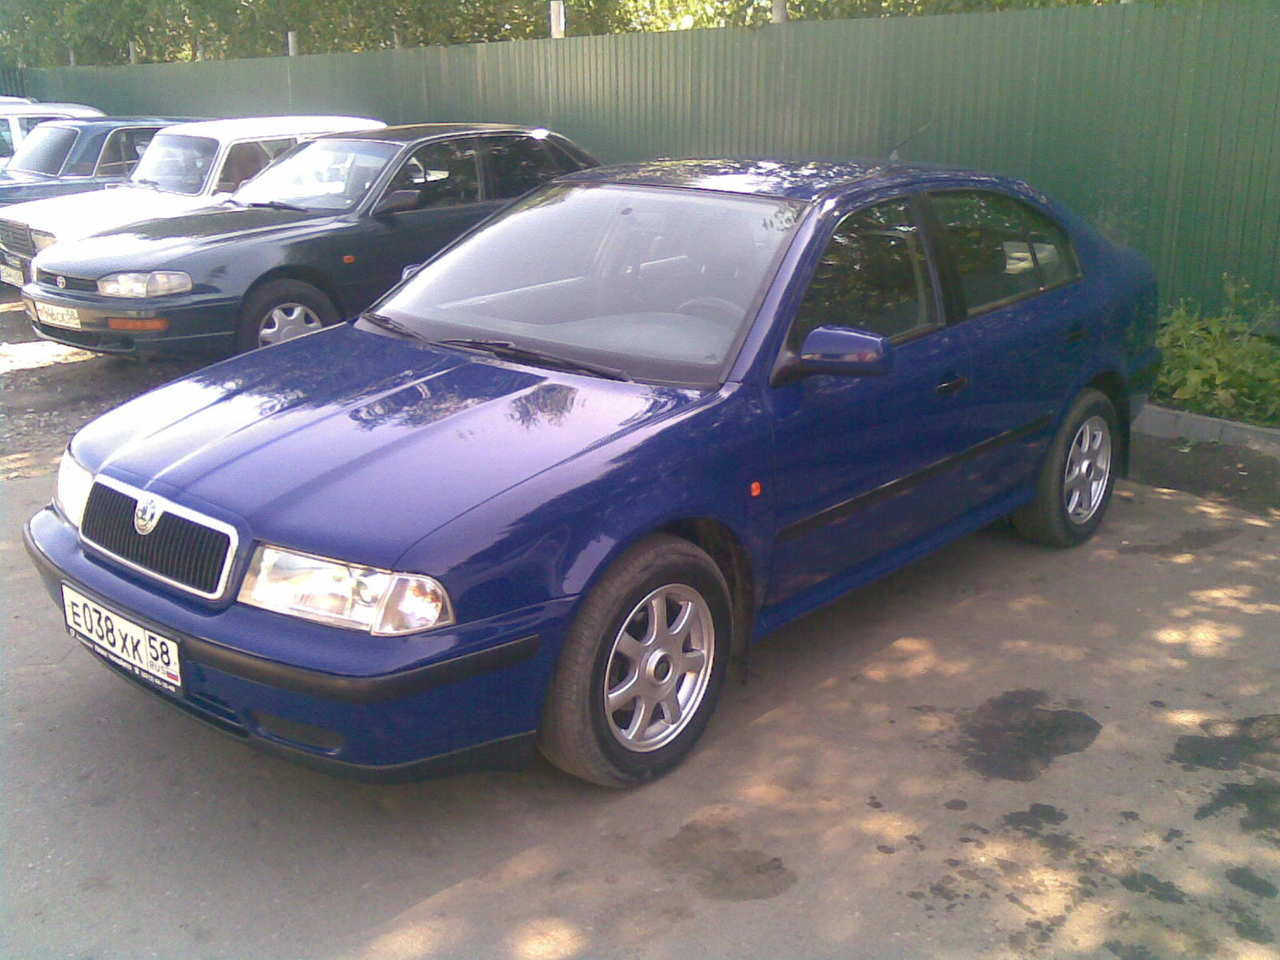 1998 Skoda Octavia Specs  Engine Size 1 6  Fuel Type